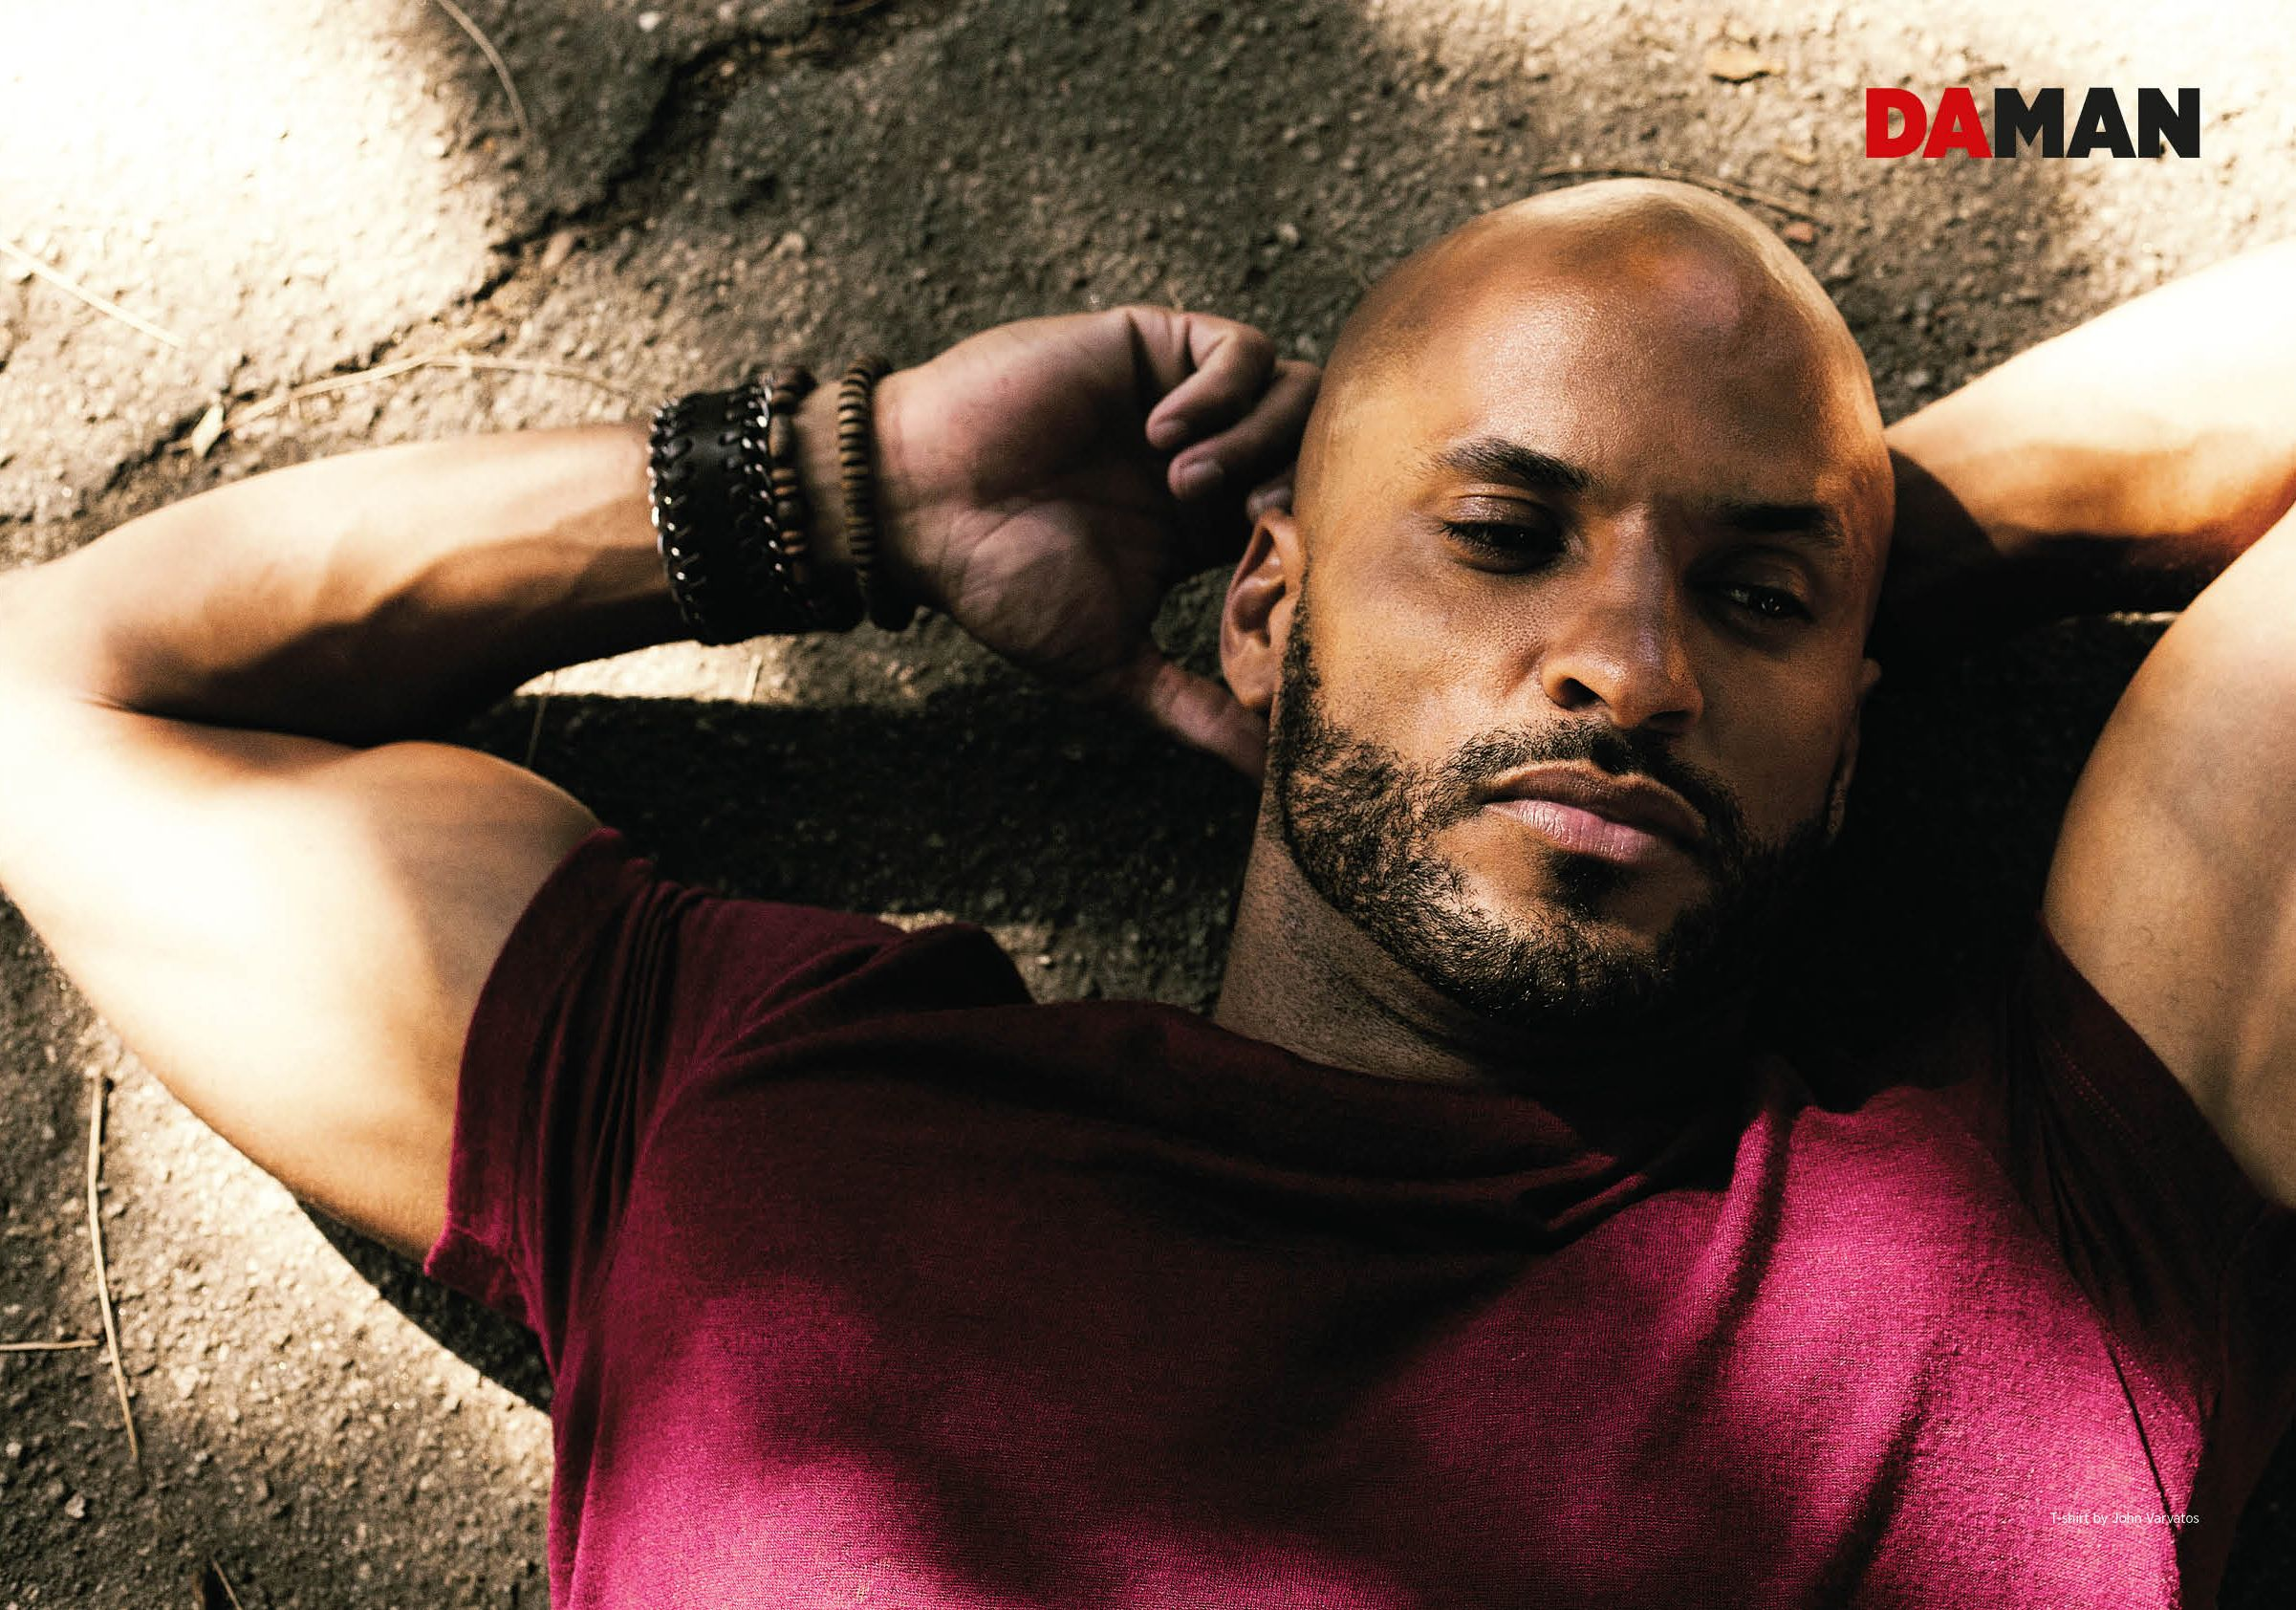 ricky whittle motherricky whittle gif, ricky whittle mother, ricky whittle wiki, ricky whittle ncis, ricky whittle 100, ricky whittle photoshoot, ricky whittle and marie avgeropoulos, ricky whittle smoking, ricky whittle ig, ricky whittle racial background, ricky whittle forum, ricky whittle insta, ricky whittle filmleri, ricky whittle father, ricky whittle instagram, ricky whittle tumblr, ricky whittle height, ricky whittle twitter, ricky whittle dancing with the stars, ricky whittle and marie avgeropoulos interview